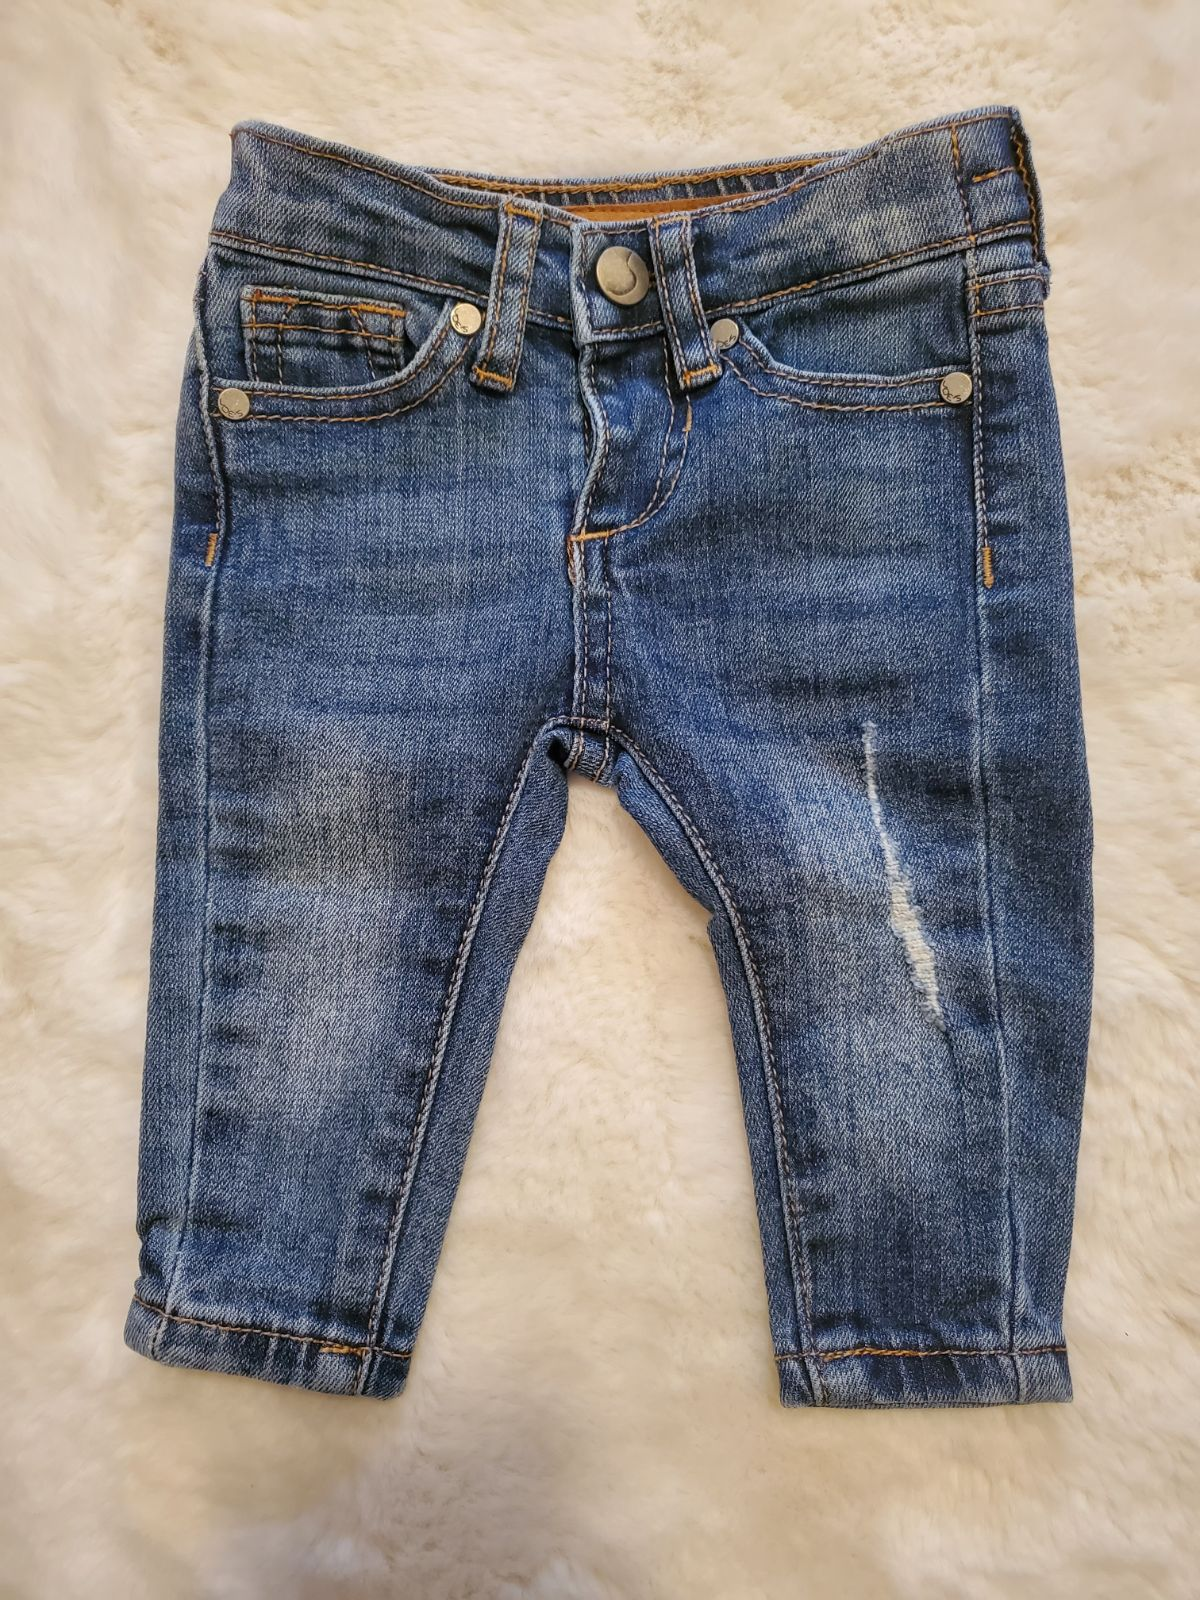 Joes baby jeans 0-3 month distressed ski